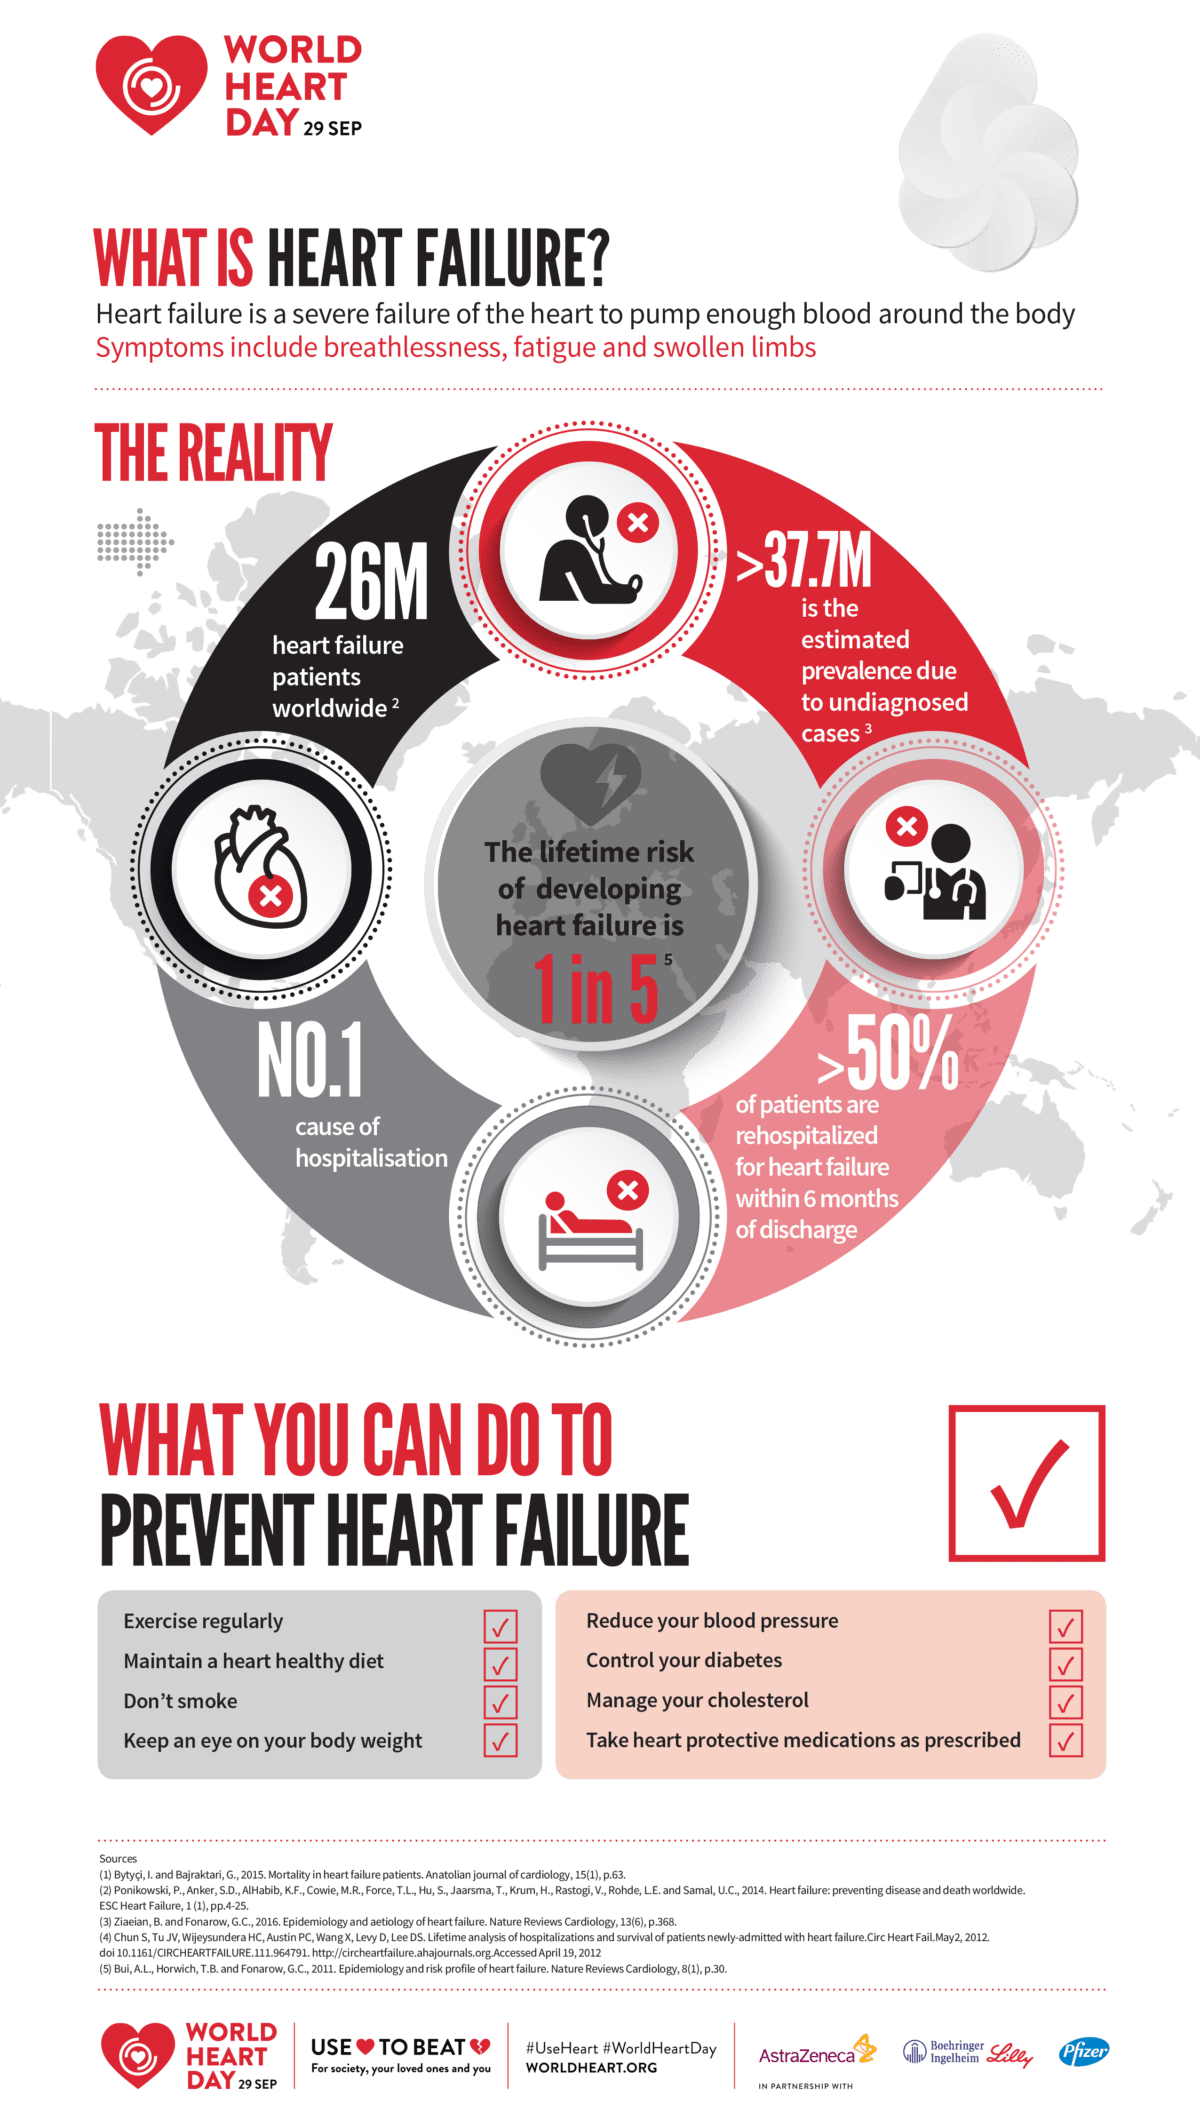 Heart failure facts and how to prevent it